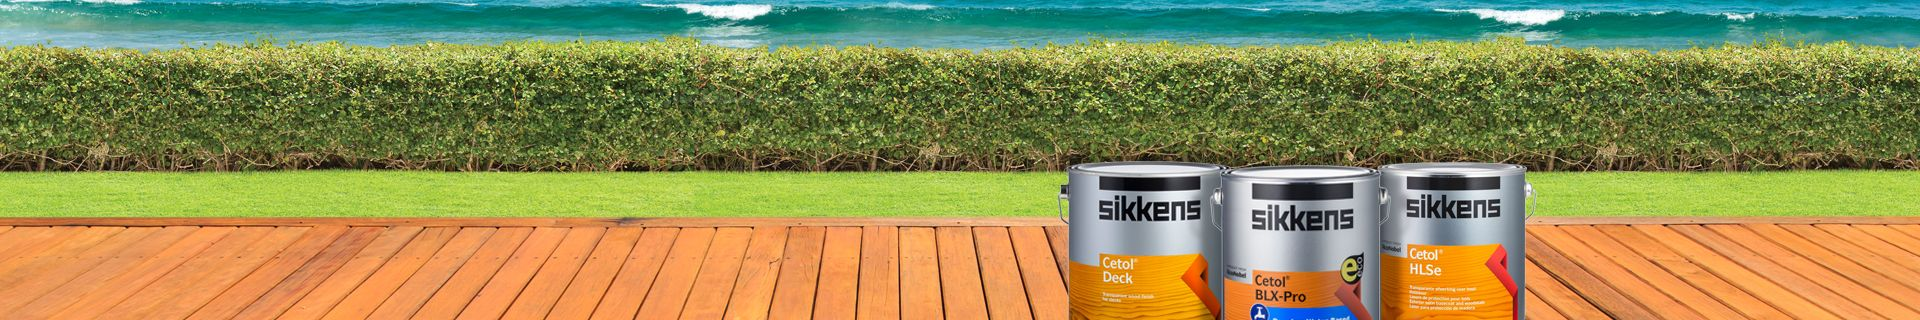 Decking looking out onto ocean, with tins of Sikkens on deck.